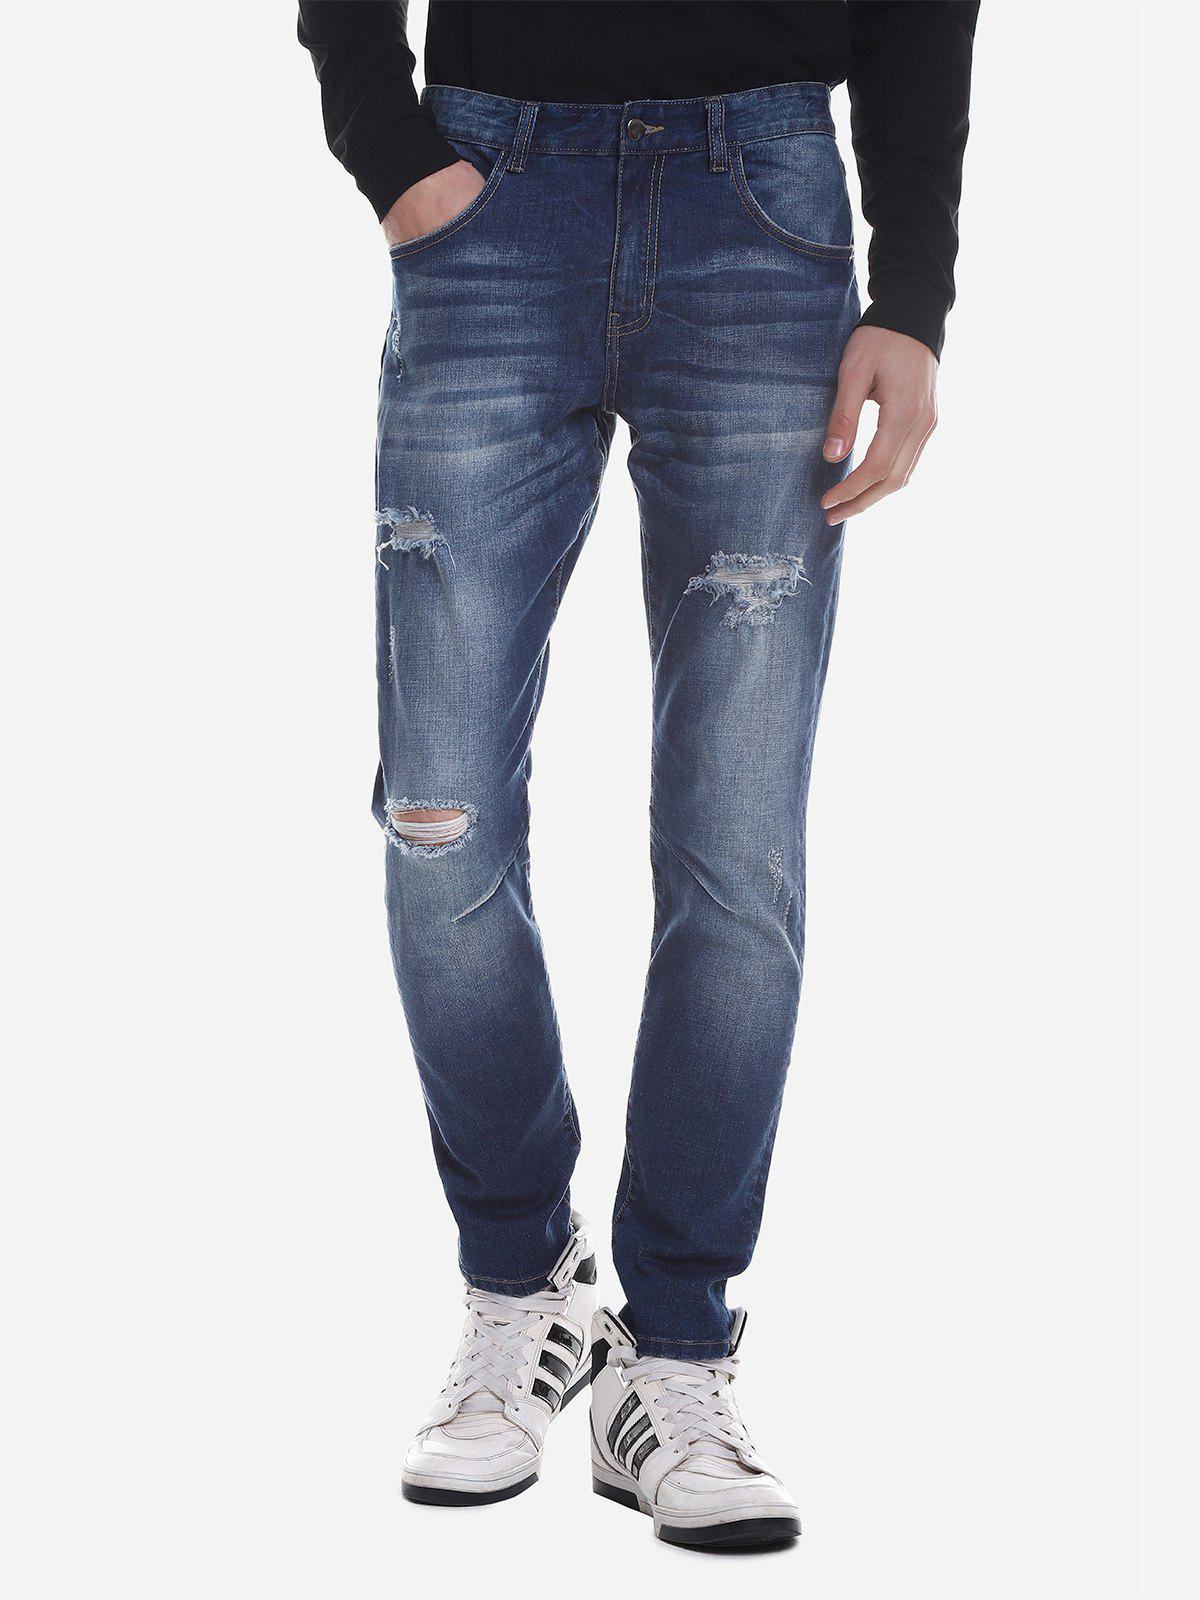 Jeans Skinny Faded Bleu 32